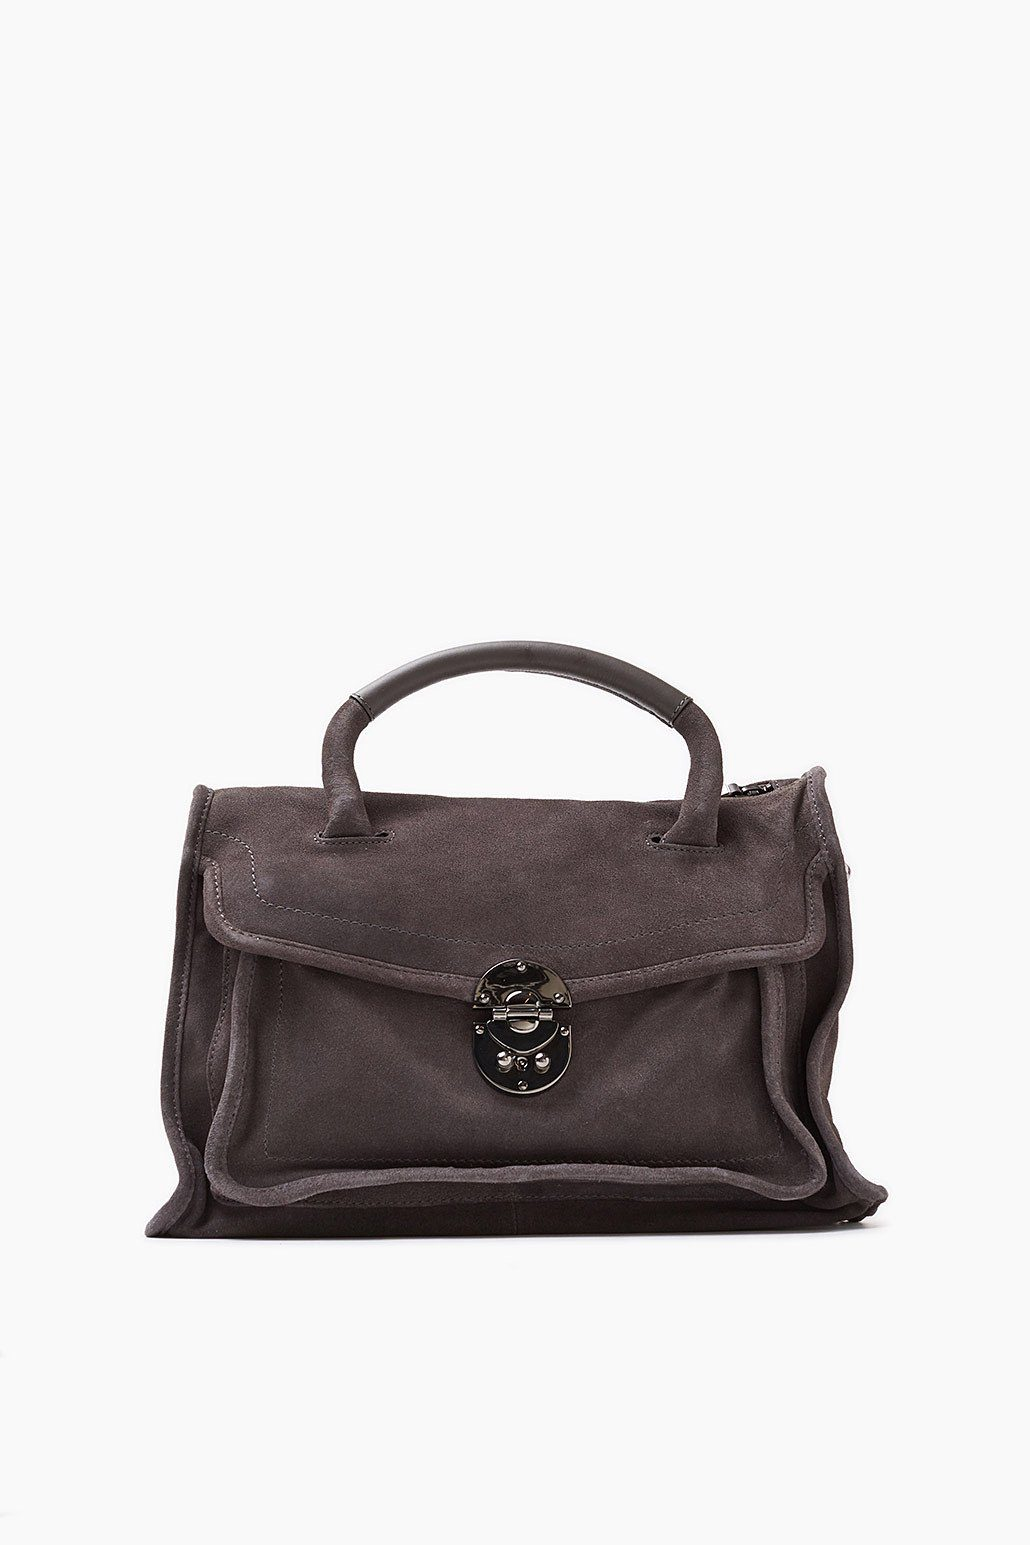 ESPRIT CASUAL Lässige City Bag aus rauem Veloursleder